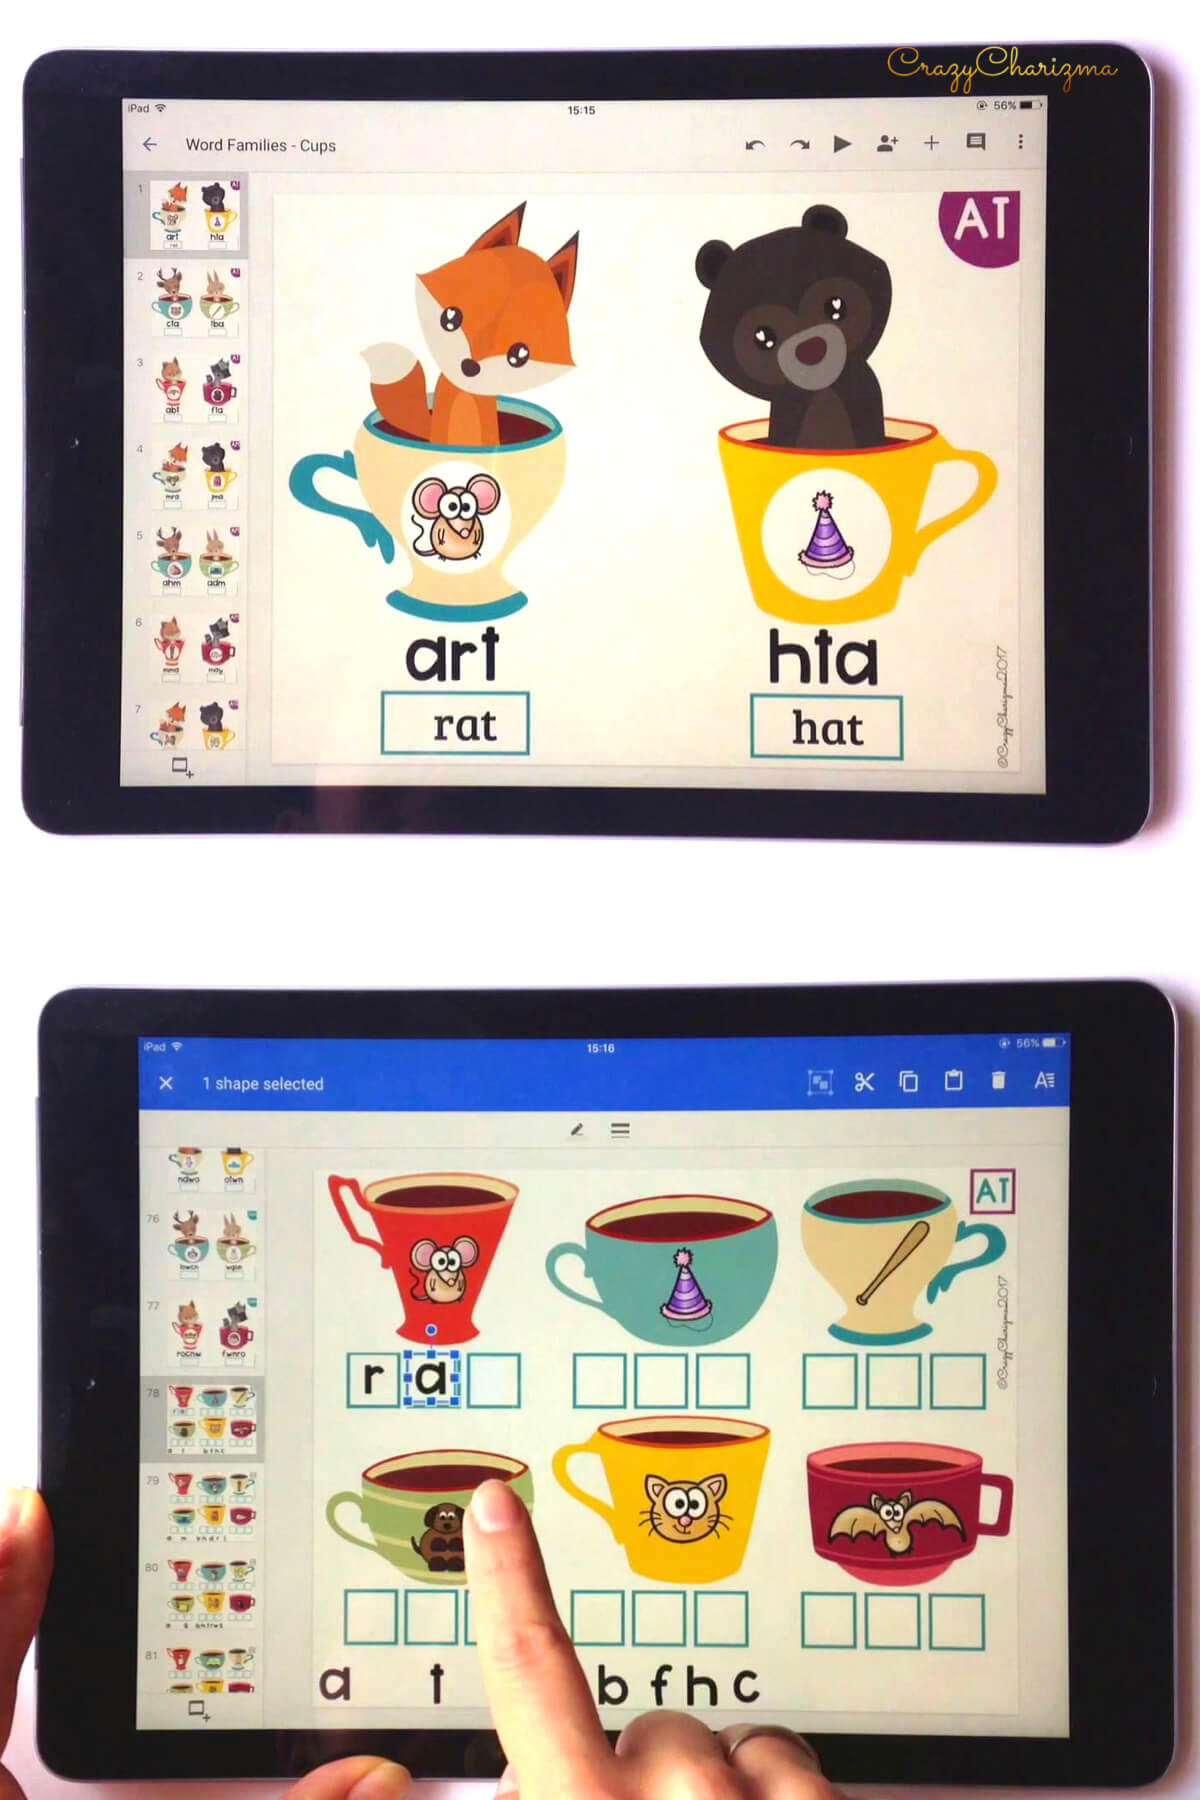 Google Classroom Activities for Kindergarten | Phonics Games: Practice CVC words, CVCe words and other phonics in a fun way! Train kids to type words and add the missing initial/medial/final letters to the words. Google Classroom in kindergarten can be fun!